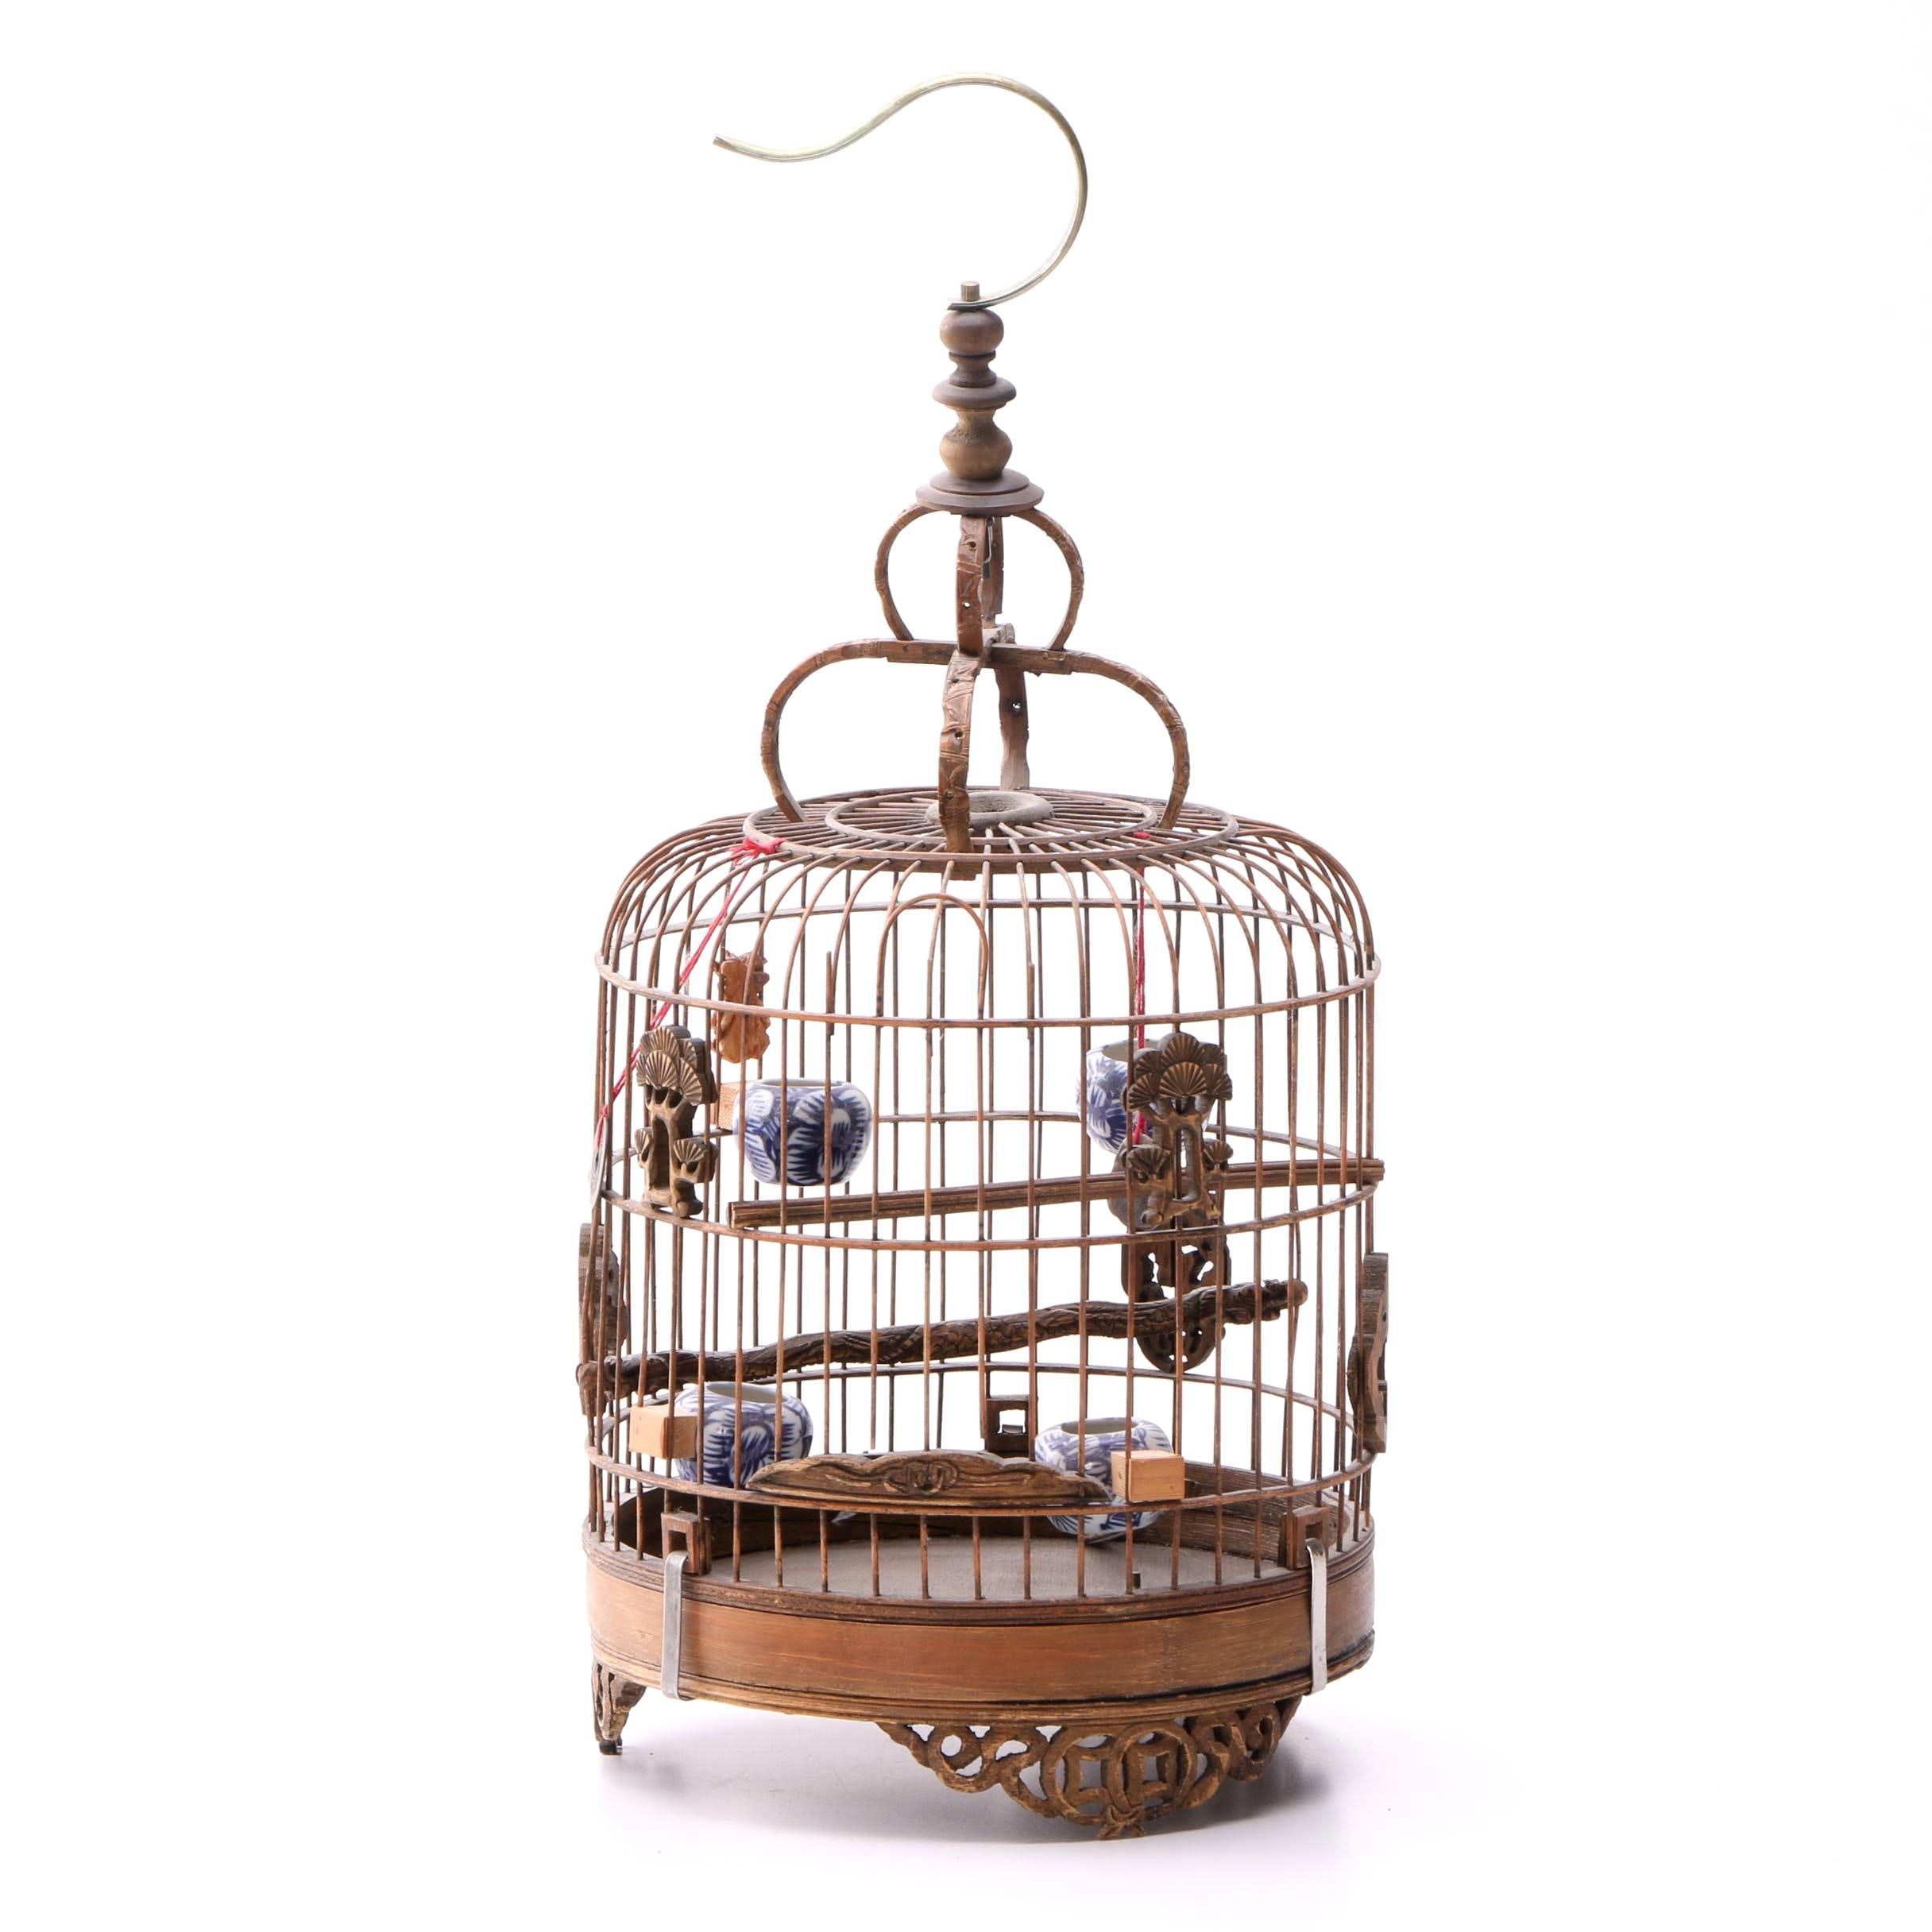 Vintage Chinese Decorative Wooden Bird Cage with Ceramic Vessels